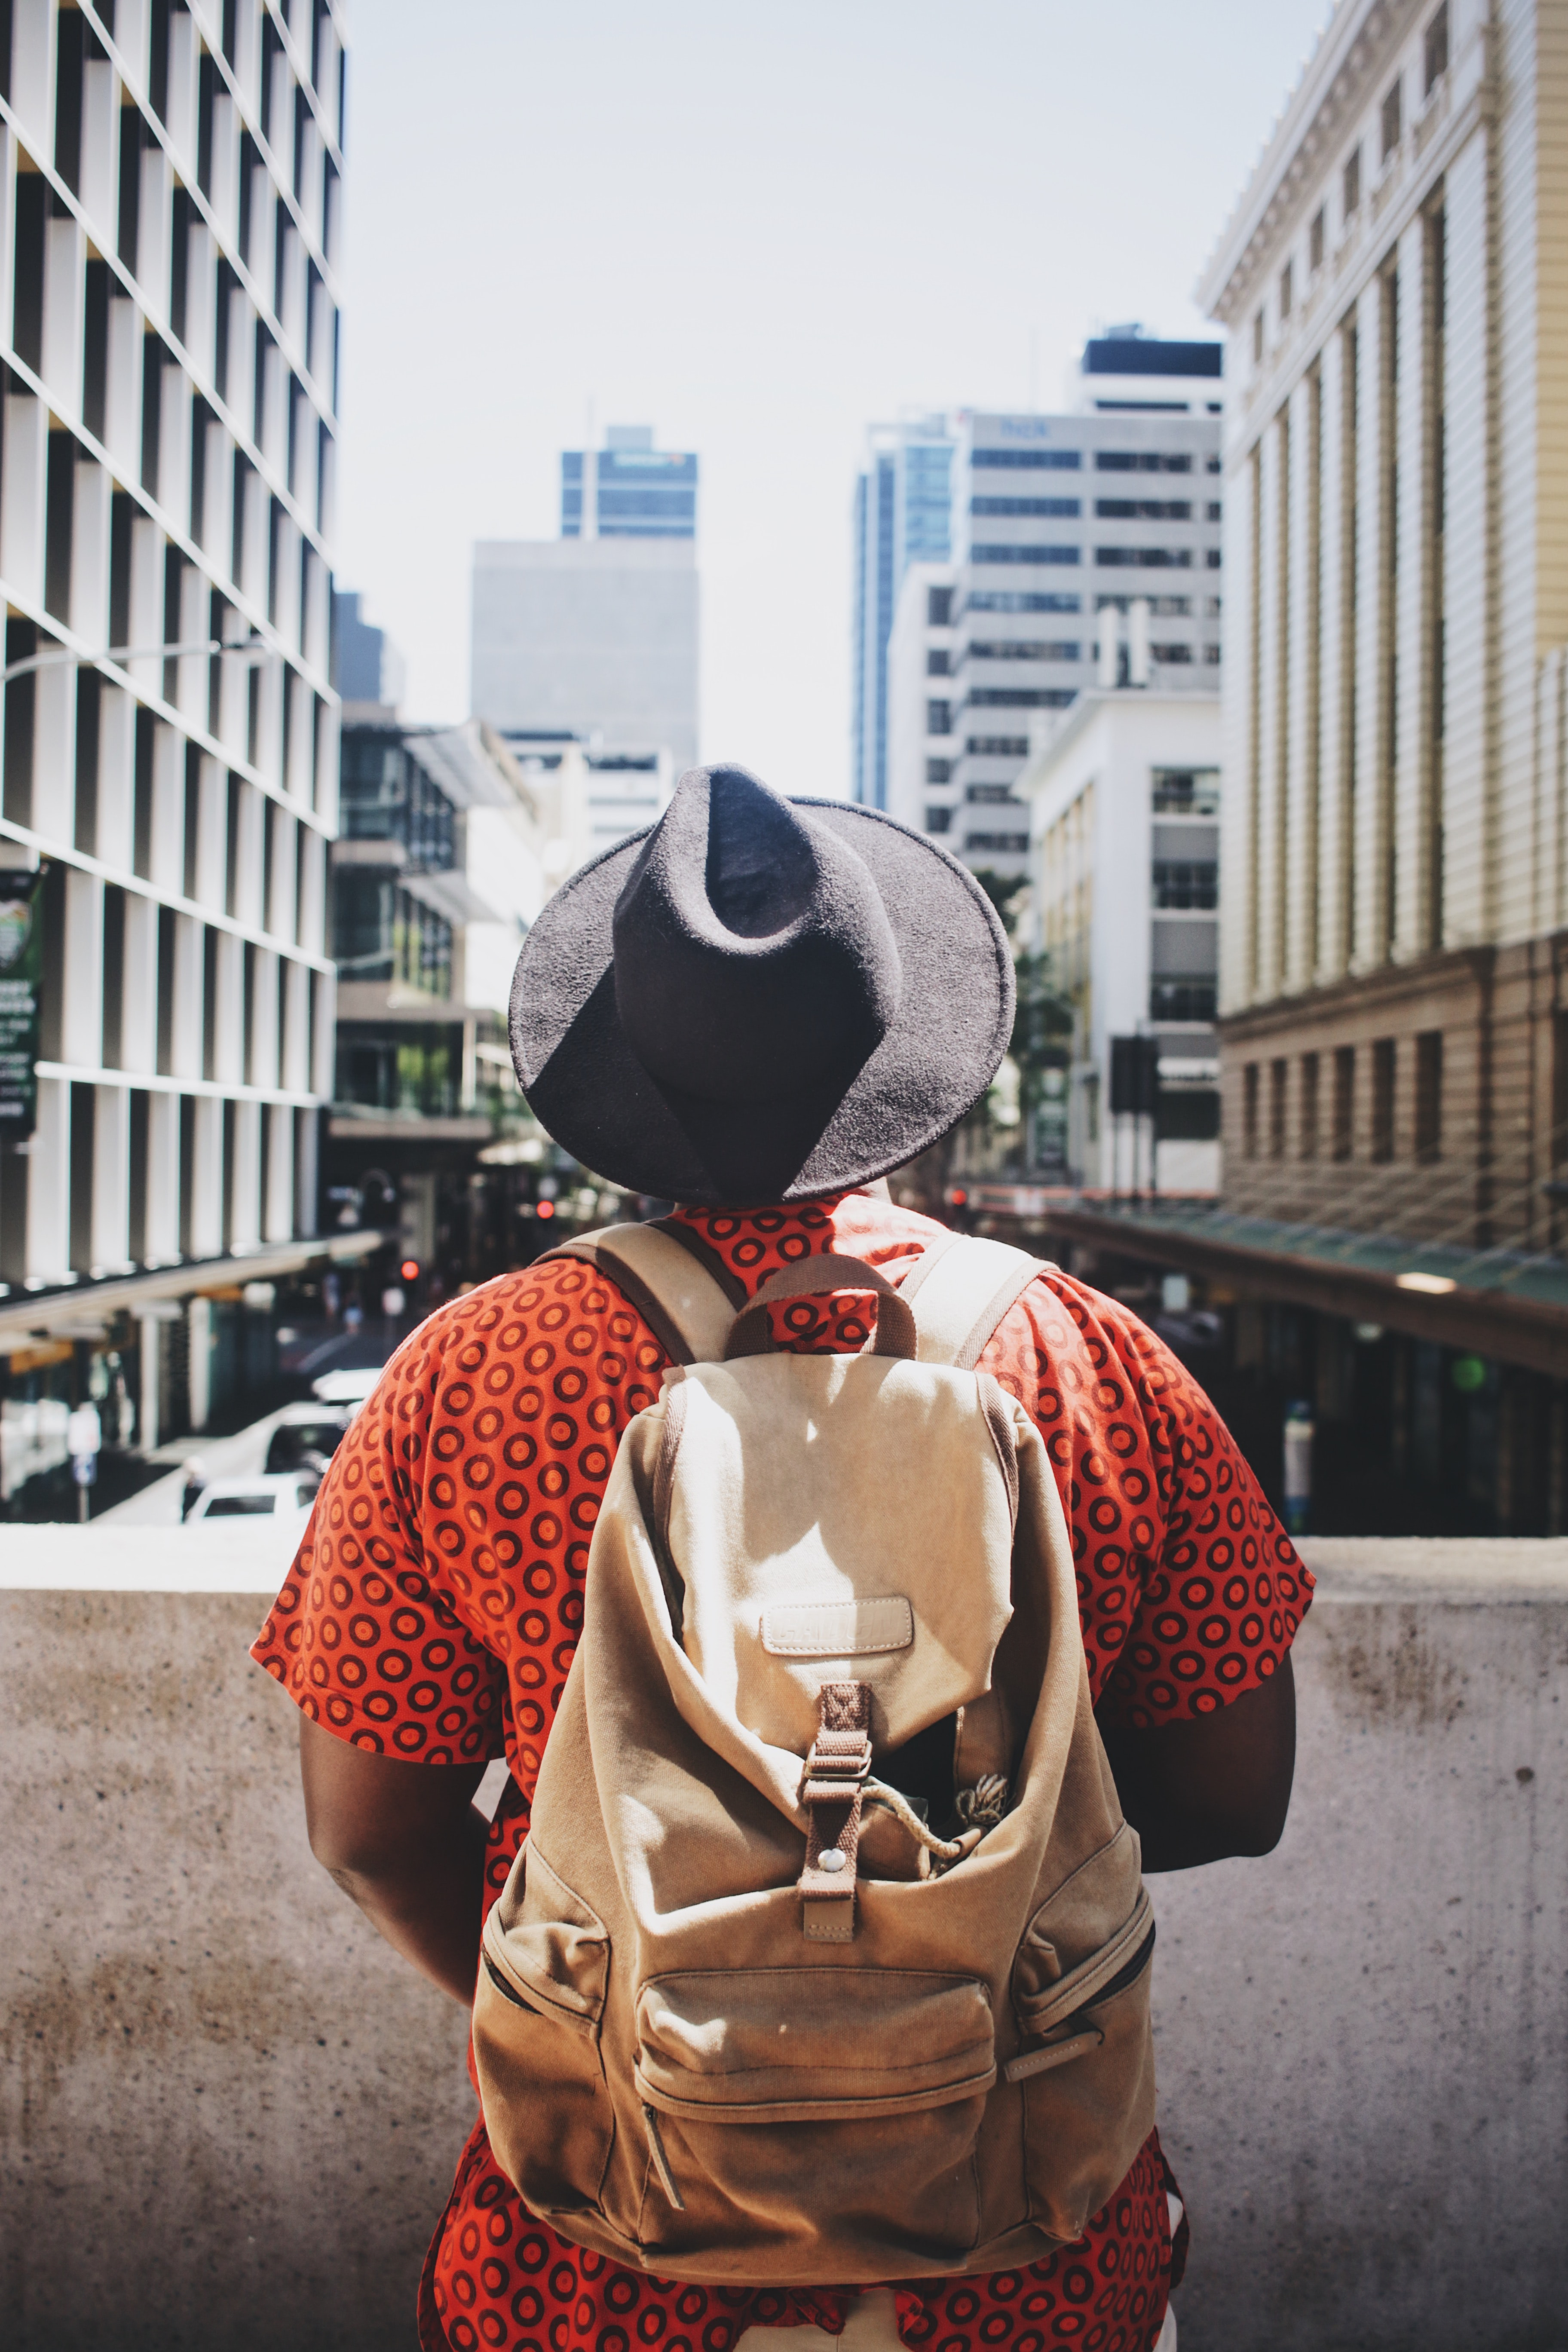 A man wearing a bright orange shirt, hat, and backpack looking out on the street in Brisbane City